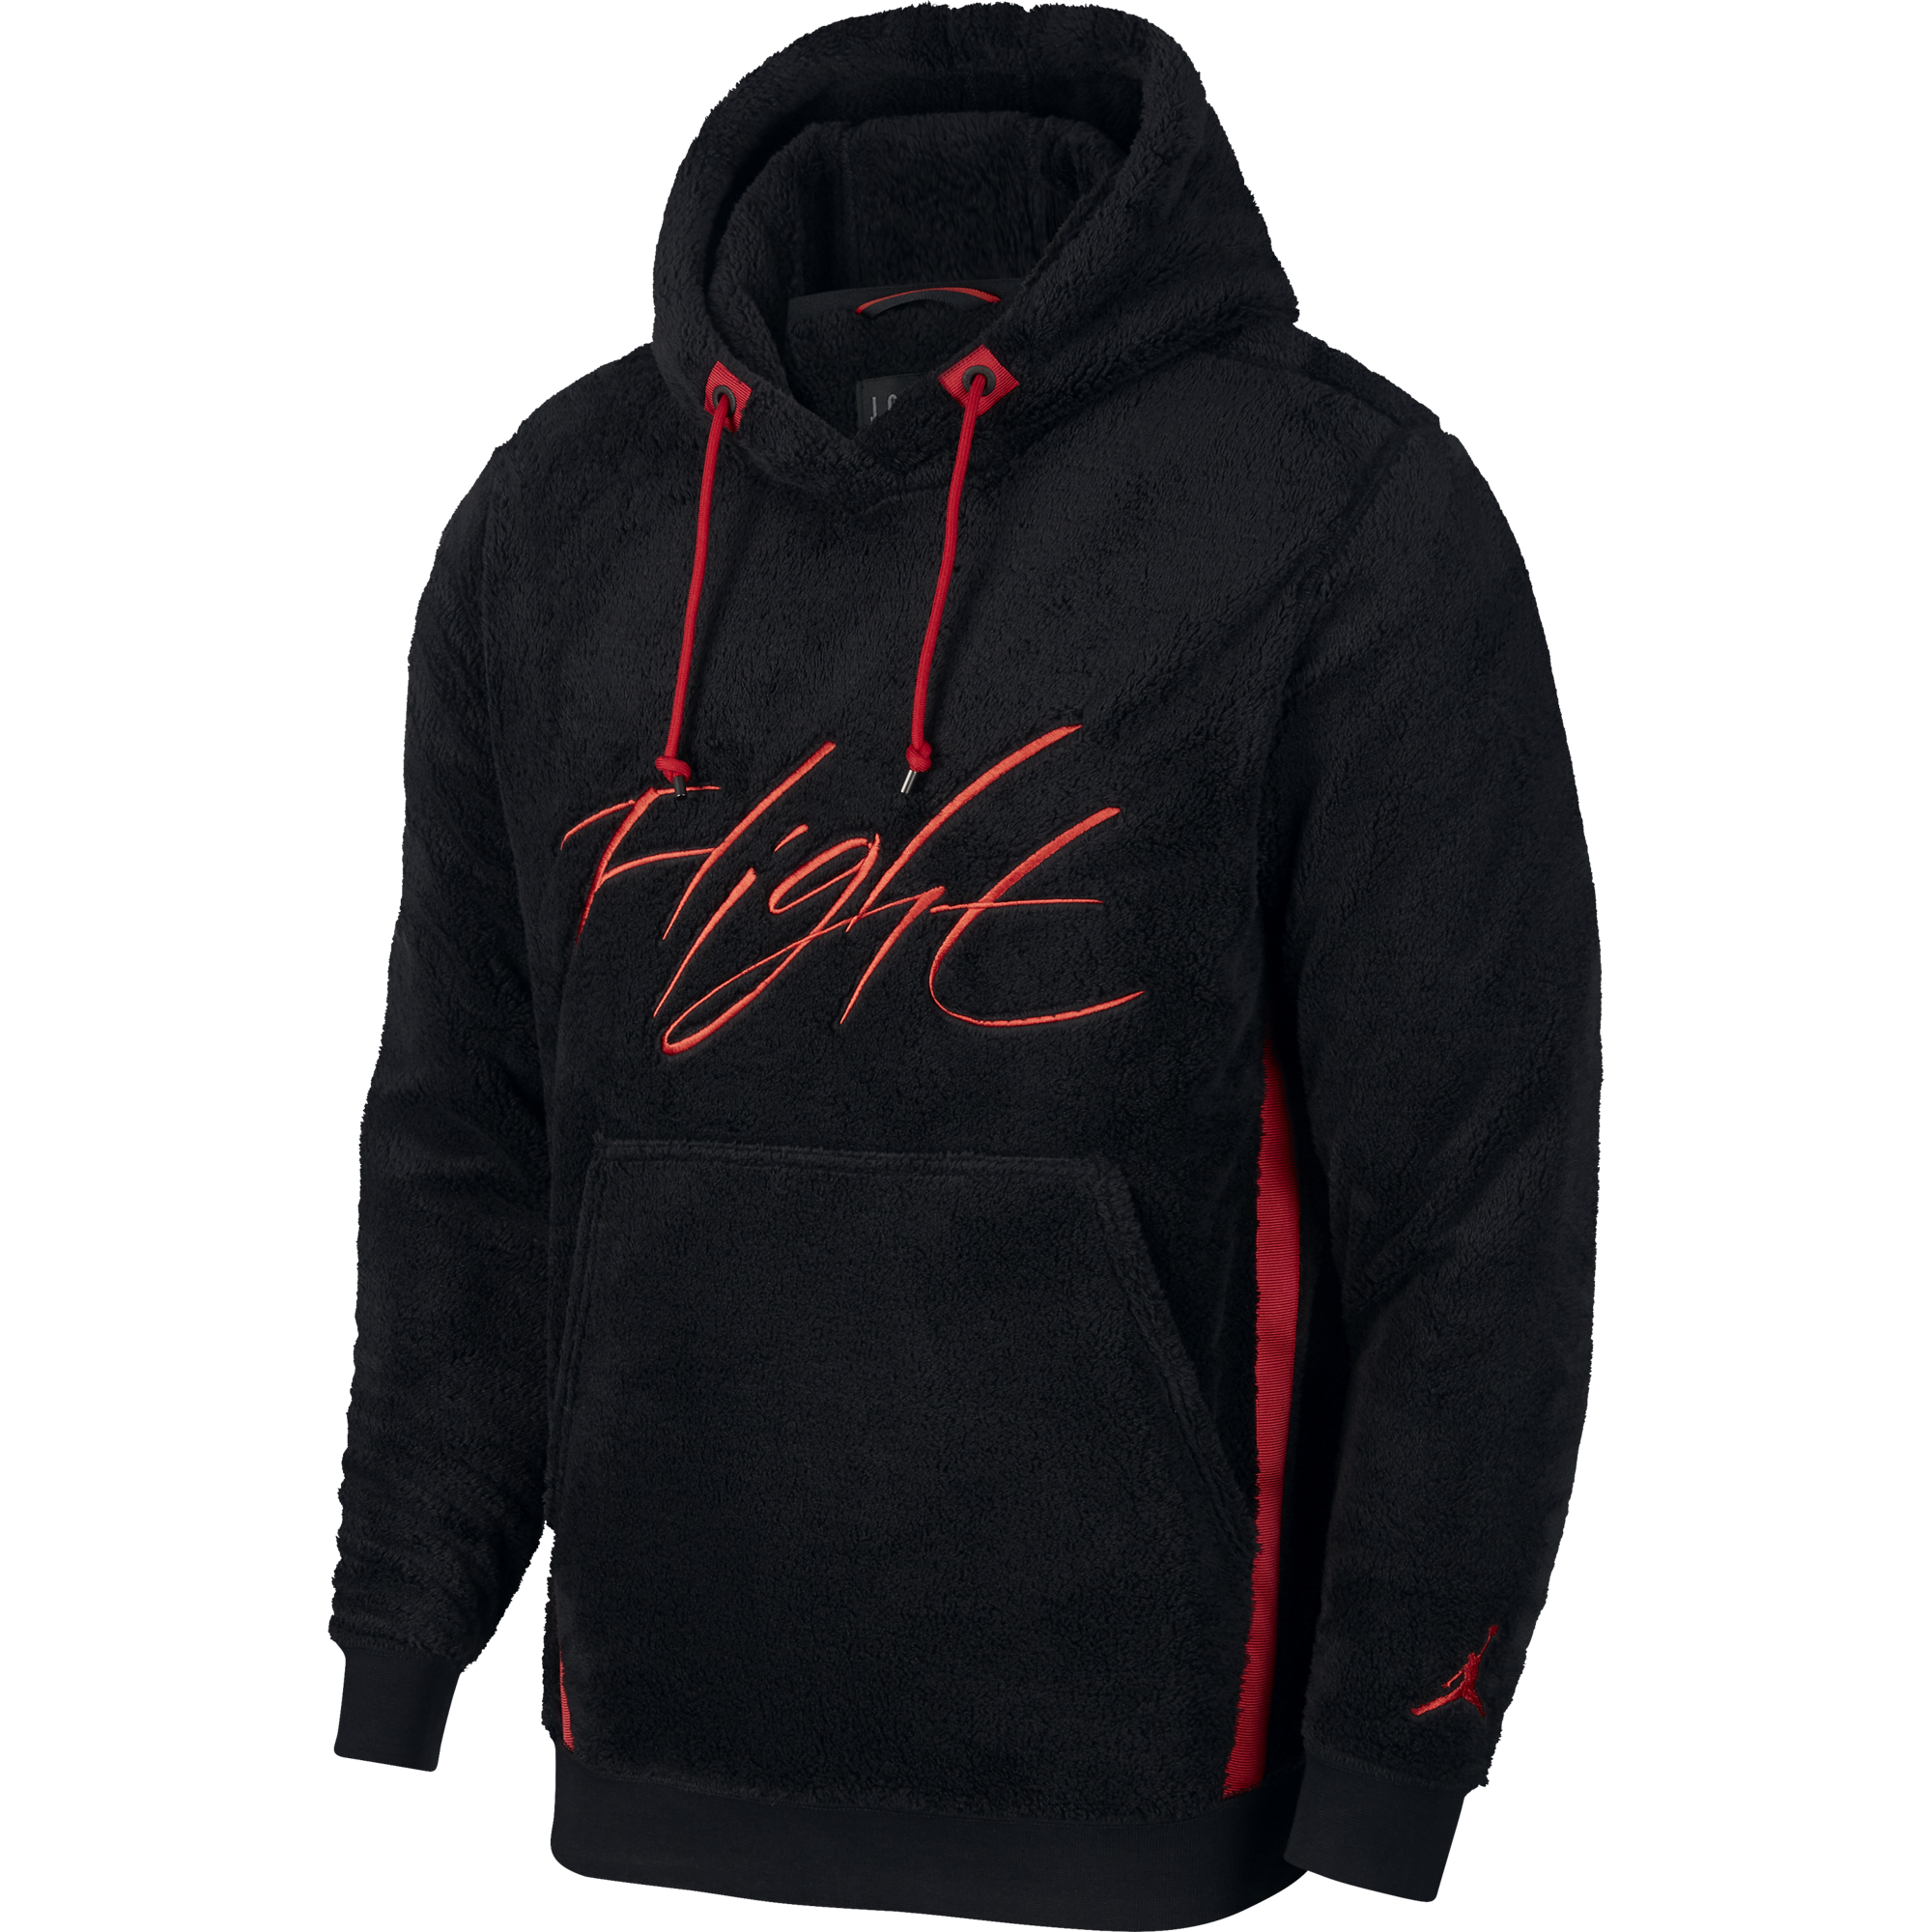 AIR JORDAN SPORTSWEAR WINGS OF FLIGHT HOODIE for £90.00